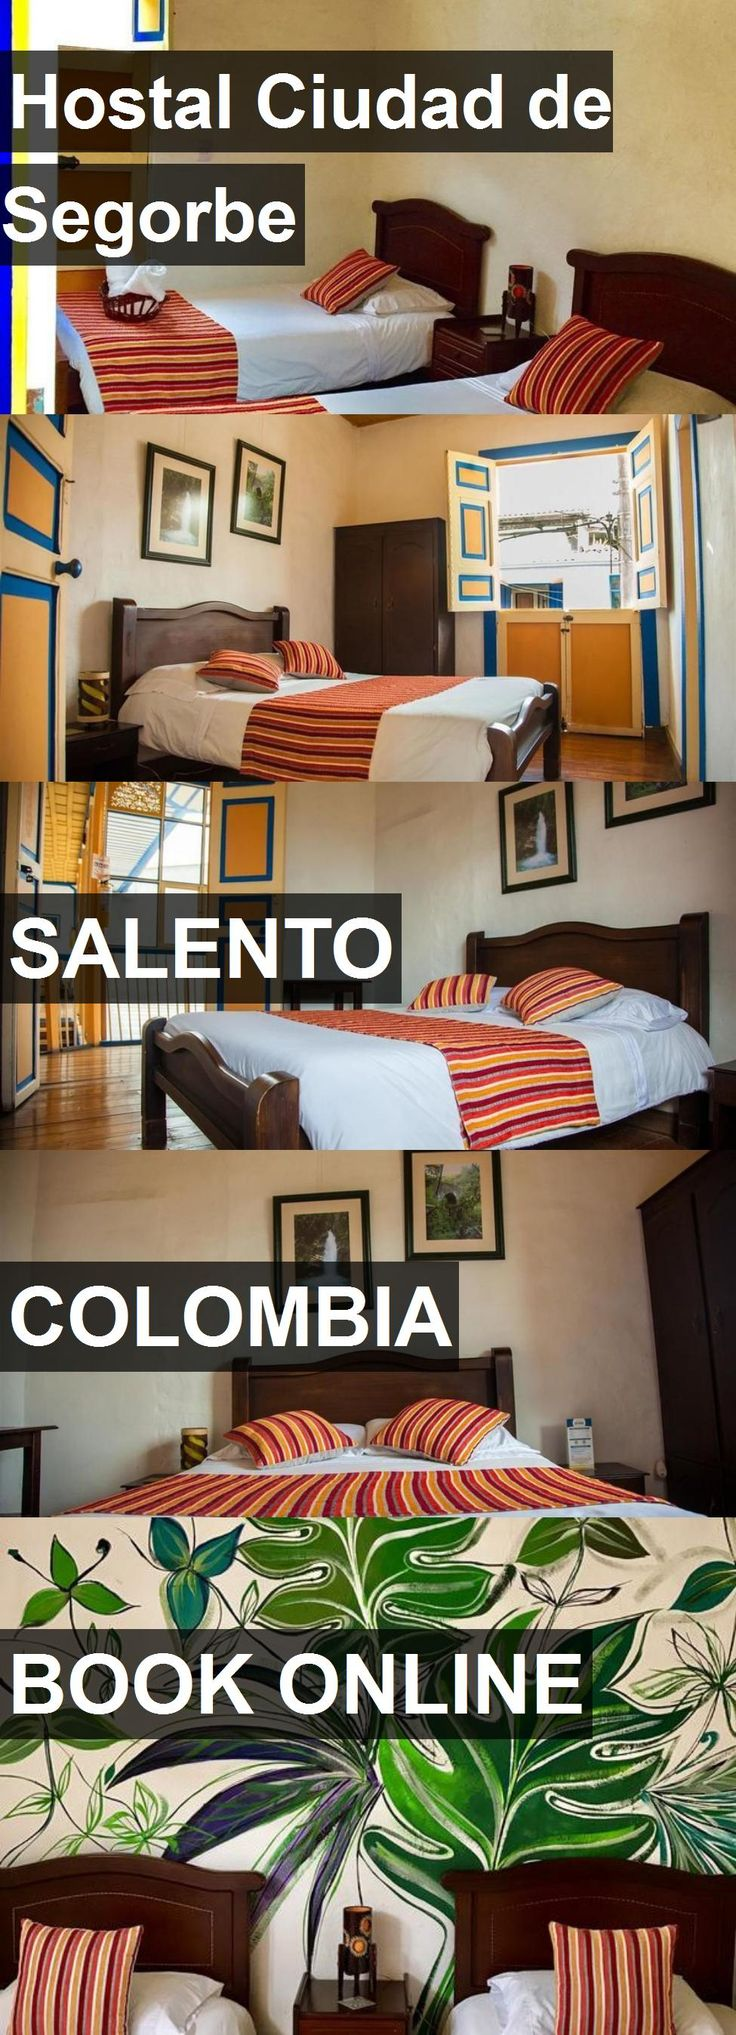 Hotel Hostal Ciudad de Segorbe in Salento, Colombia. For more information, photos, reviews and best prices please follow the link. #Colombia #Salento #travel #vacation #hotel